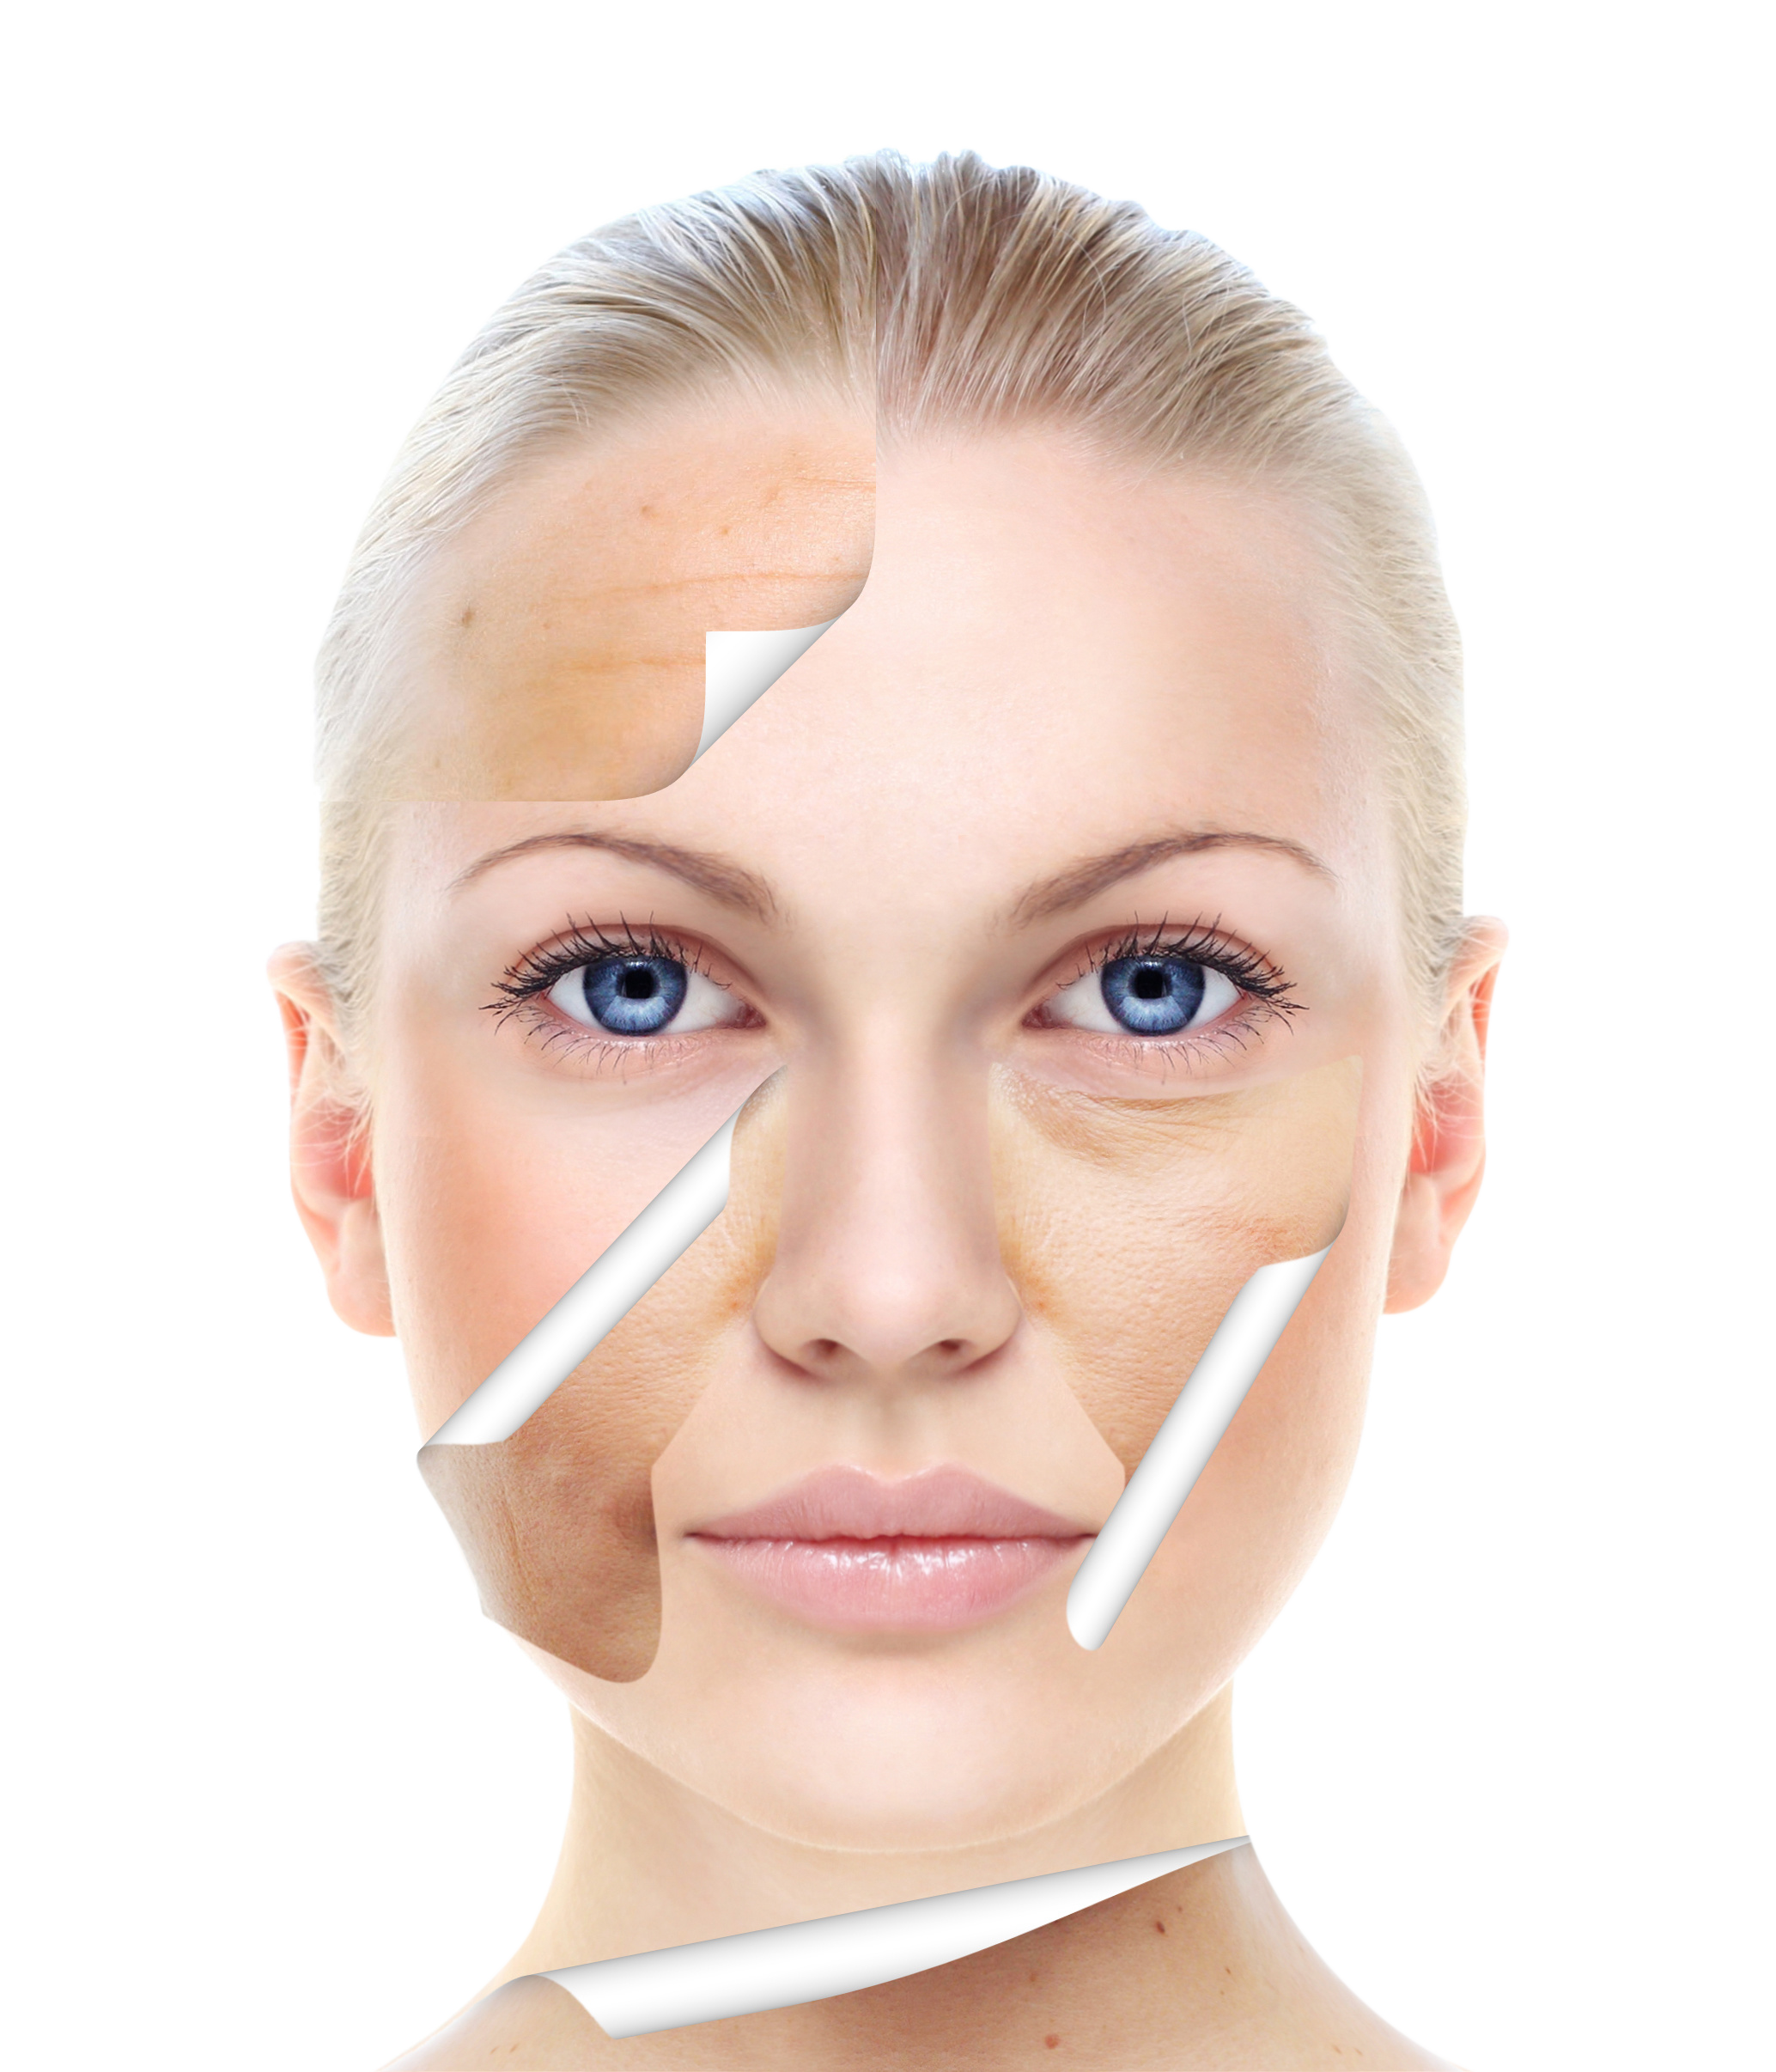 Head Beauty Up Skin Close Care PNG Image